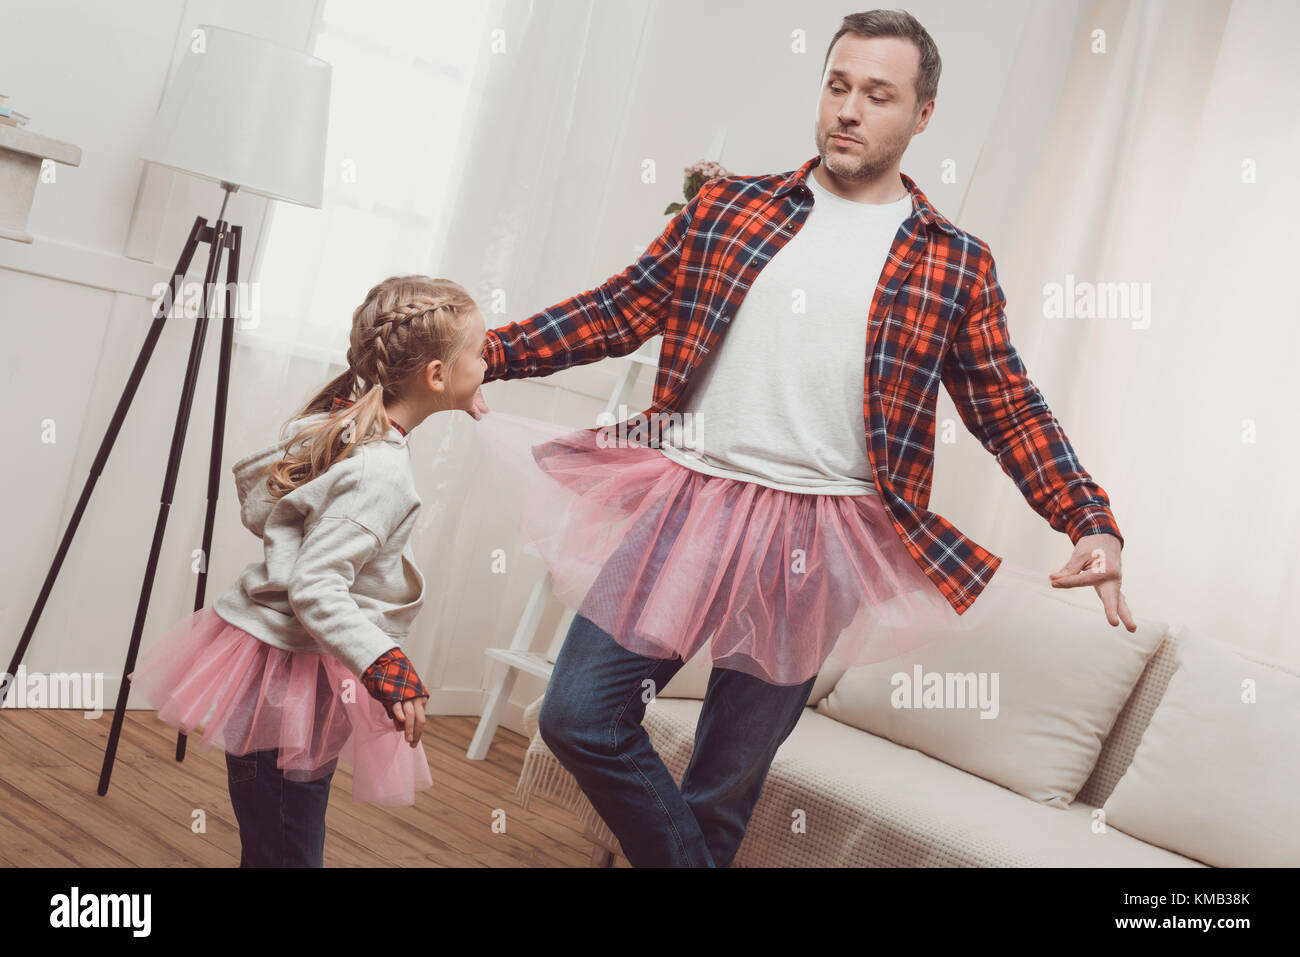 father and daughter in pink skirts - Stock Image